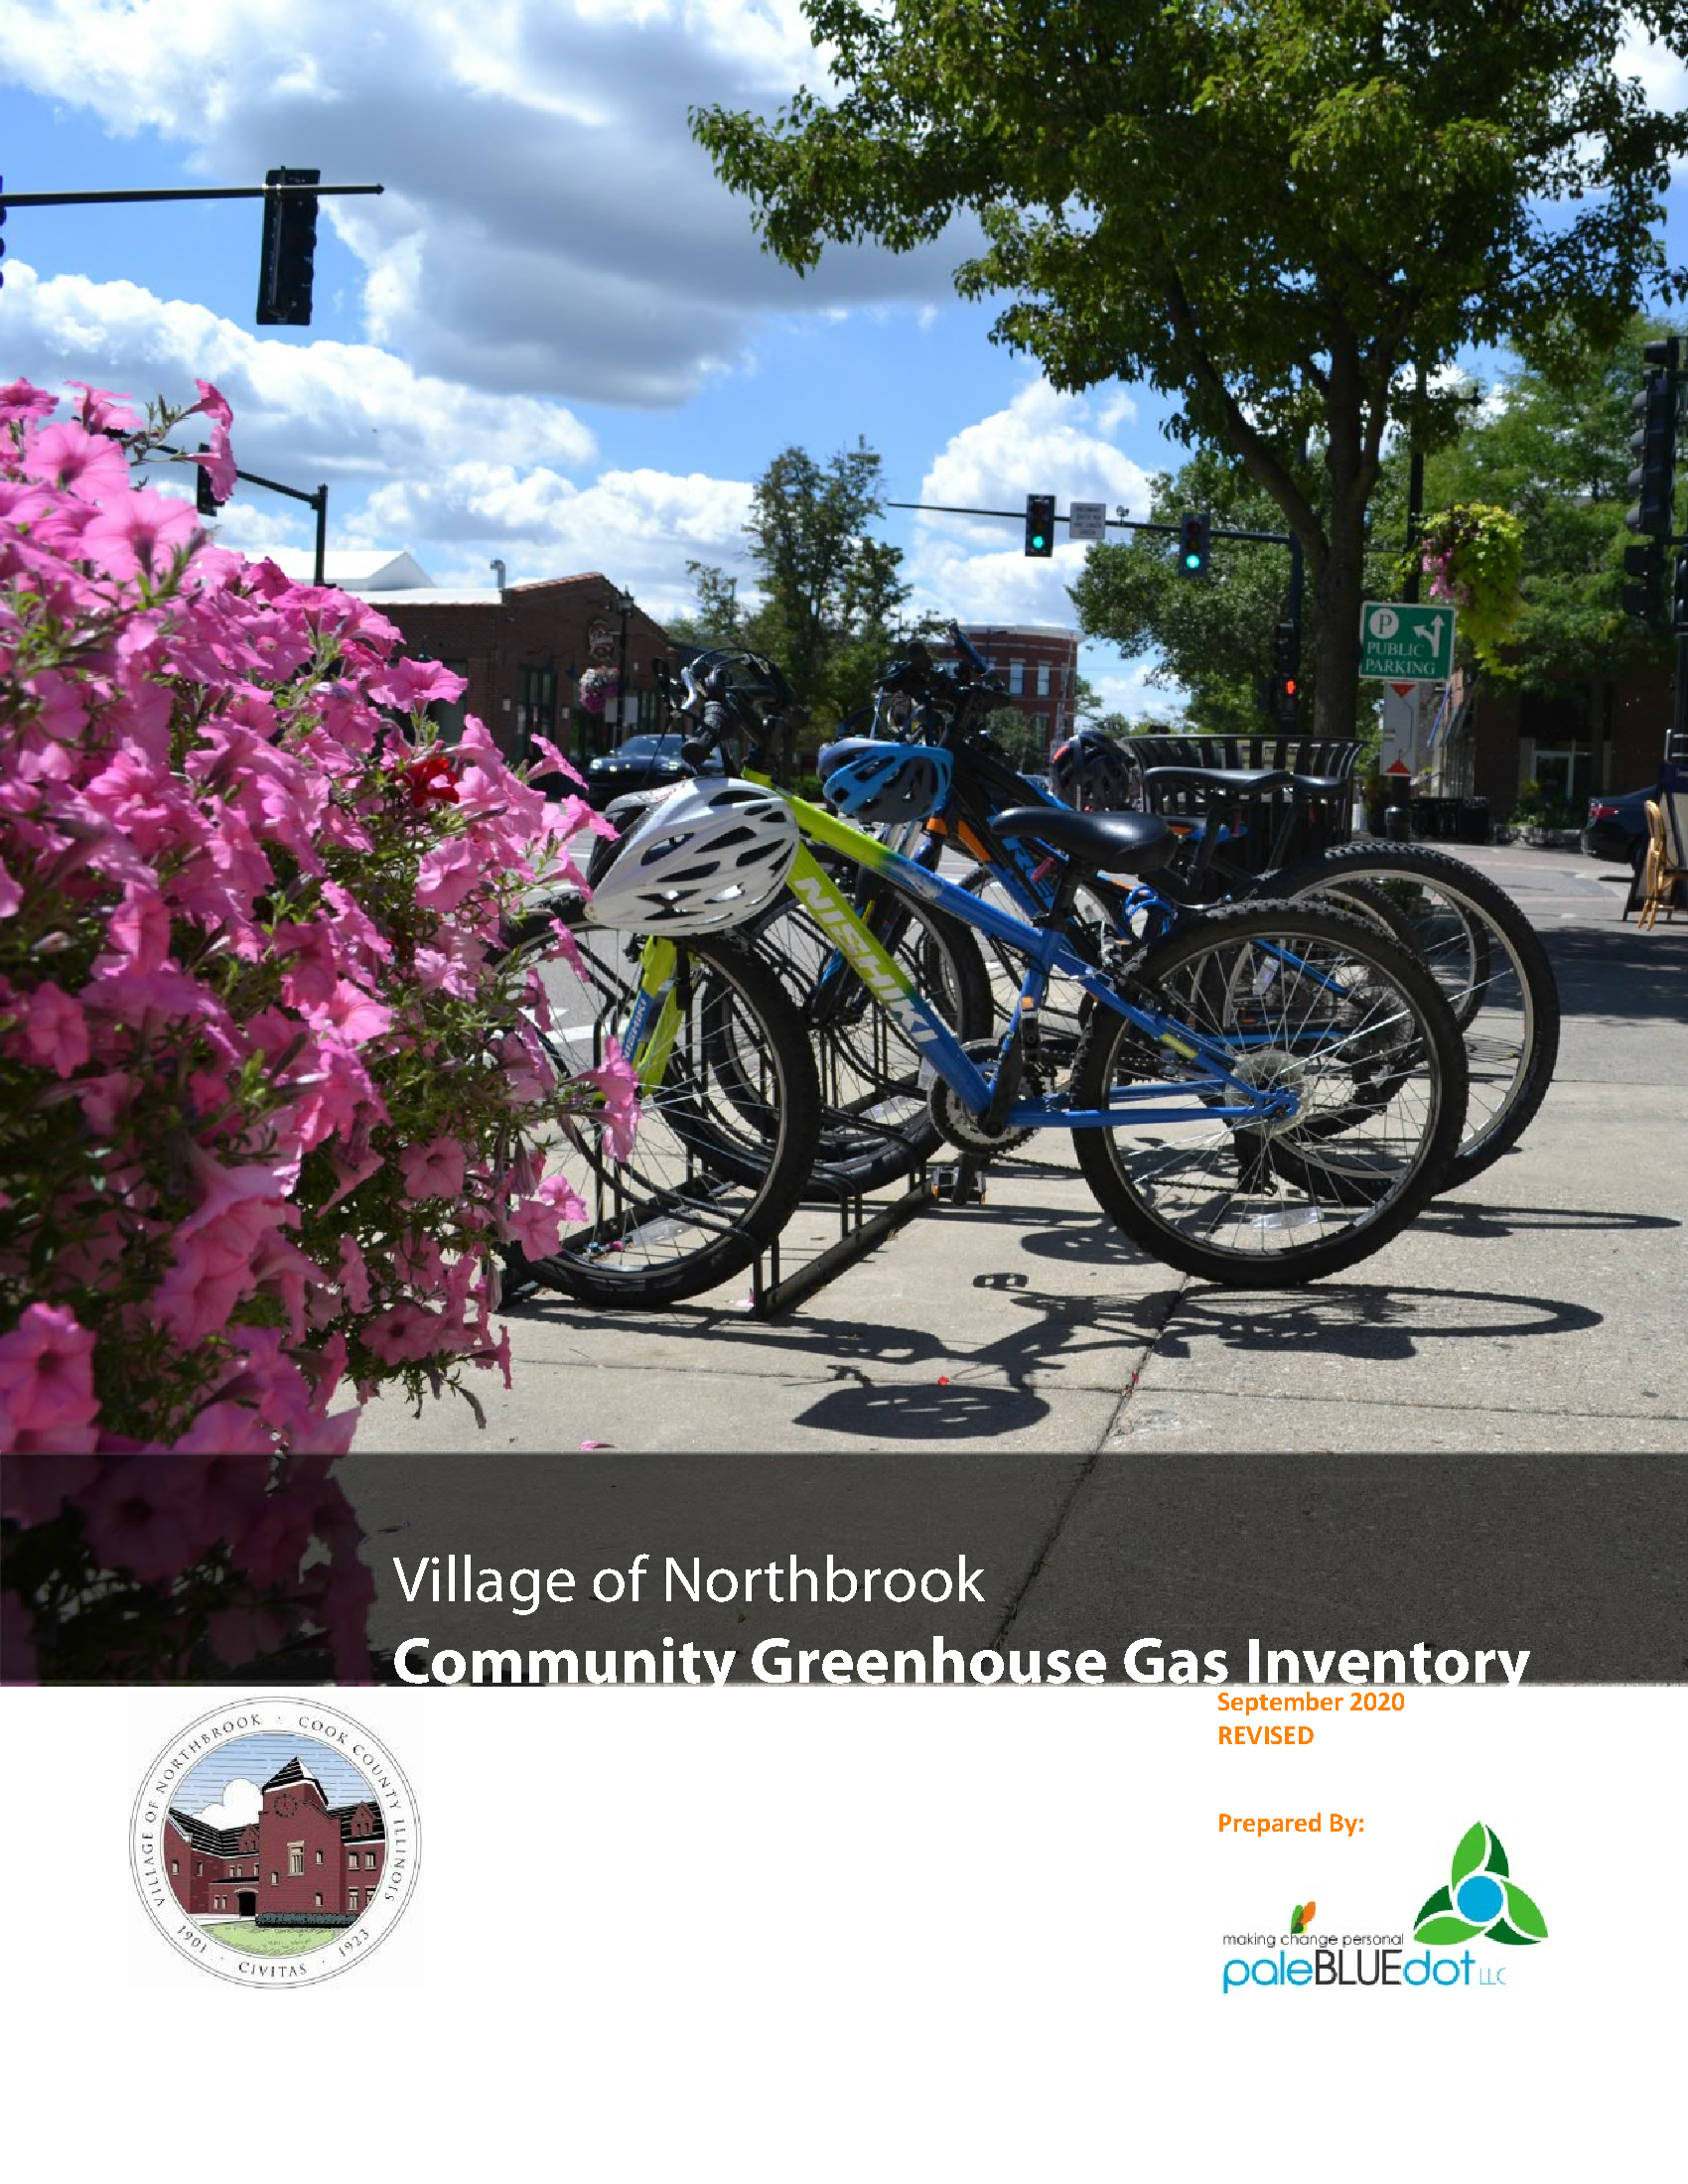 Northbrook Community GHG Inventory